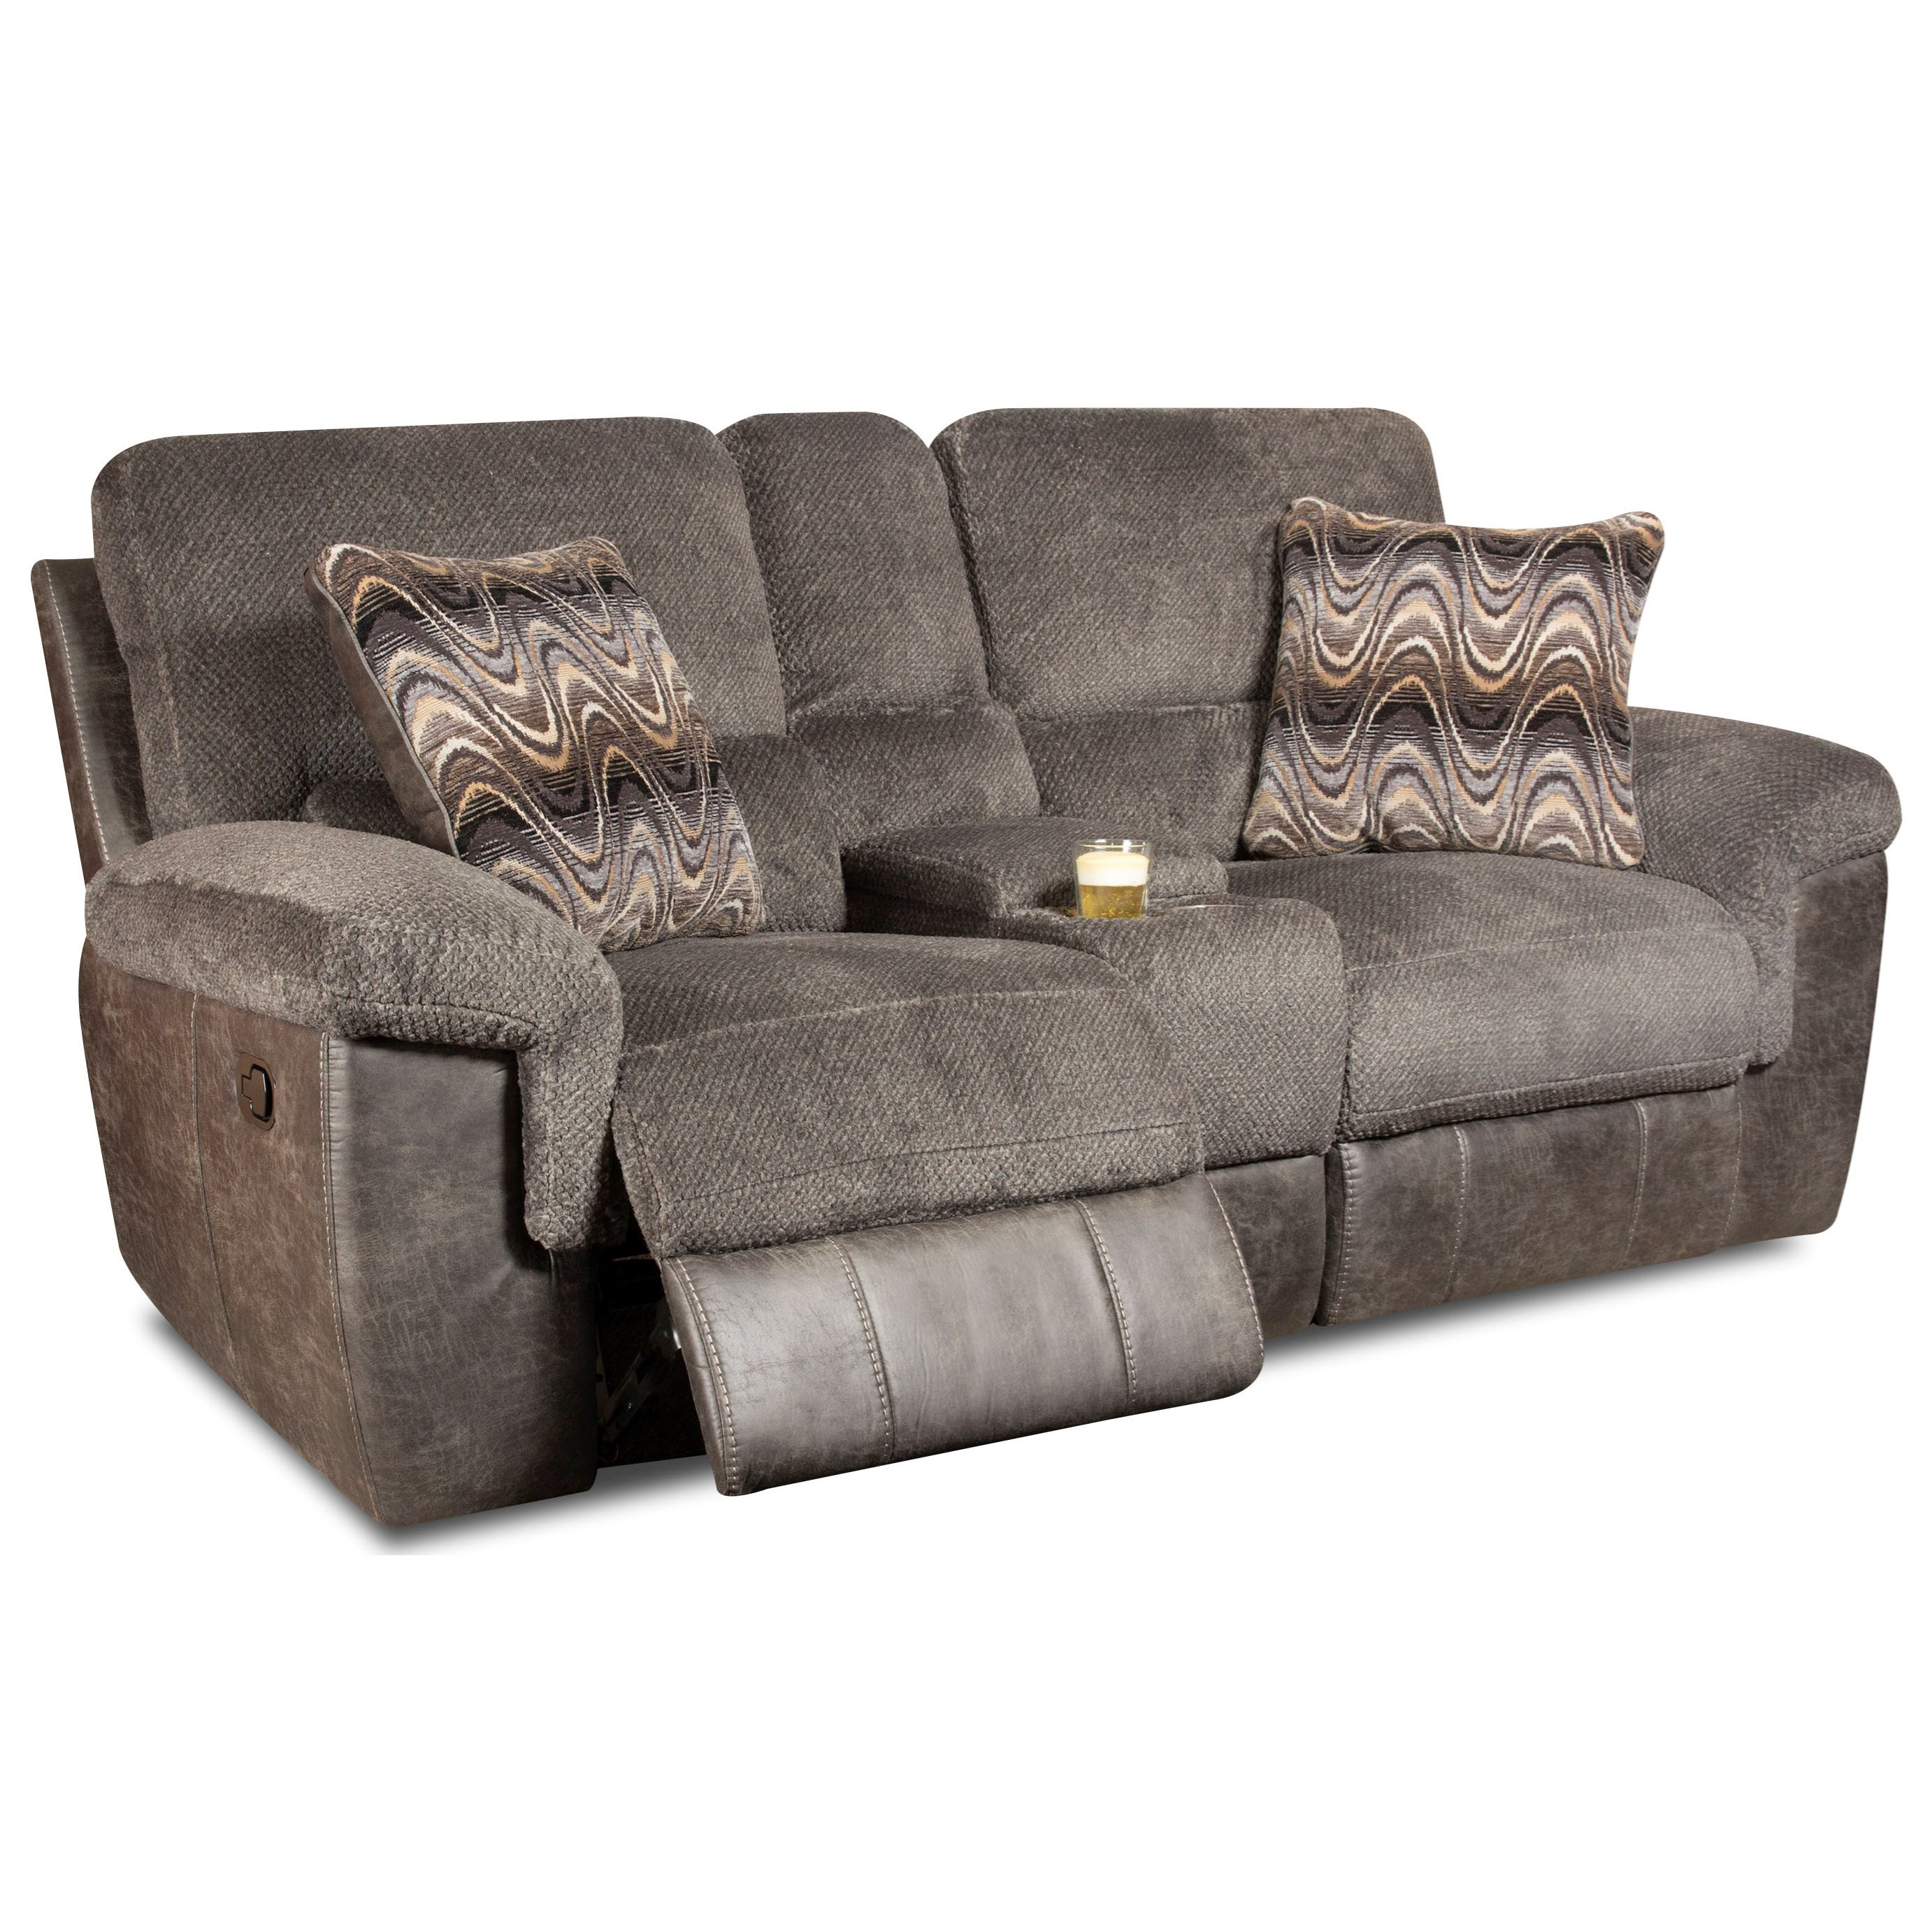 35003 Console Loveseat by Corinthian at Story & Lee Furniture